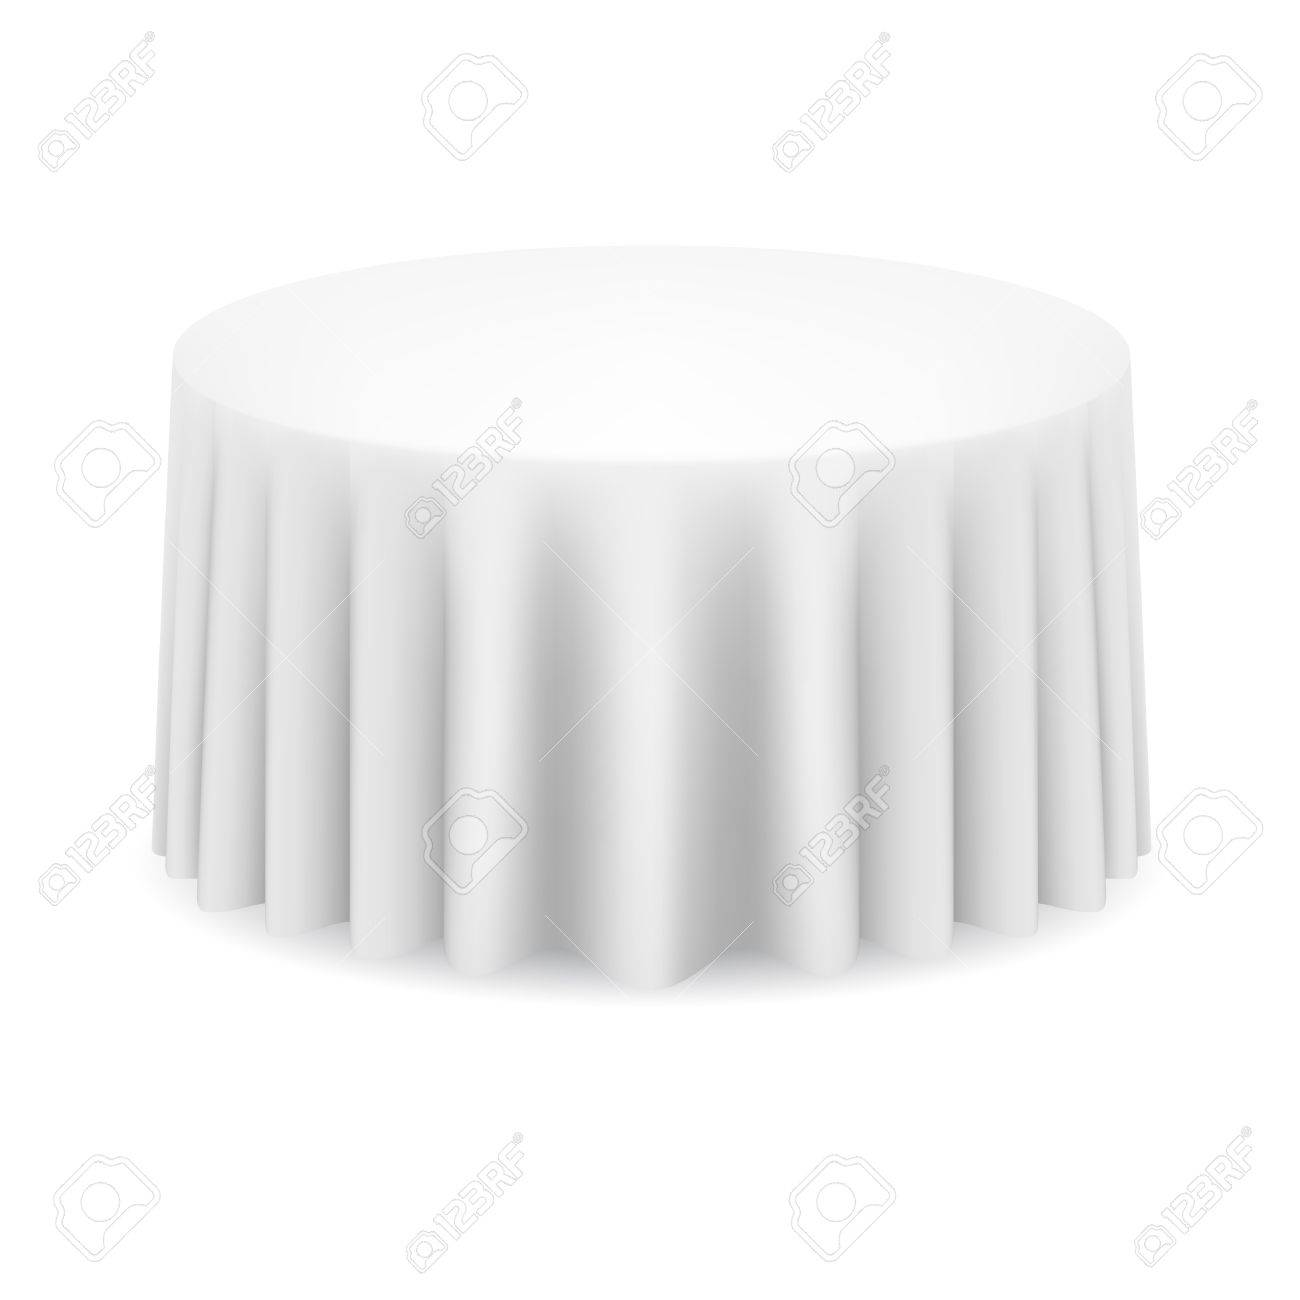 White round tablecloths cheap - White Round Table With Tablecloth Illustration On White Stock Vector 20941131